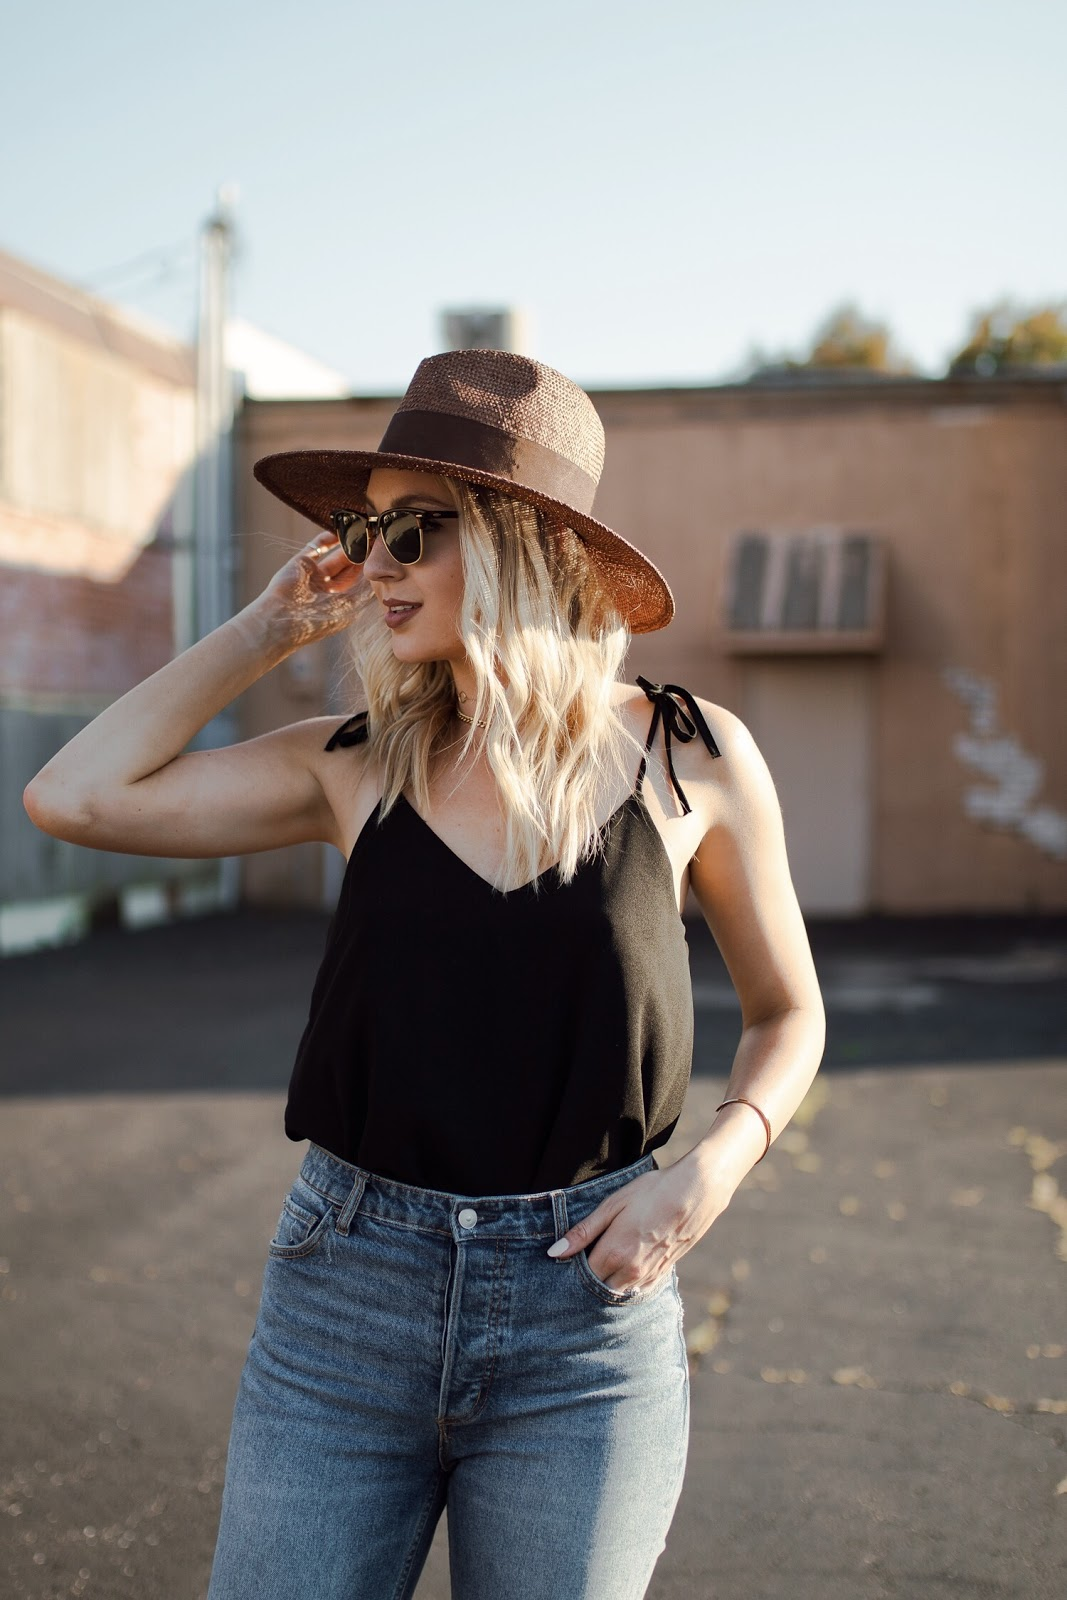 effortless summer outfit - Ray-ban Clubmaster sunnies, straw hat